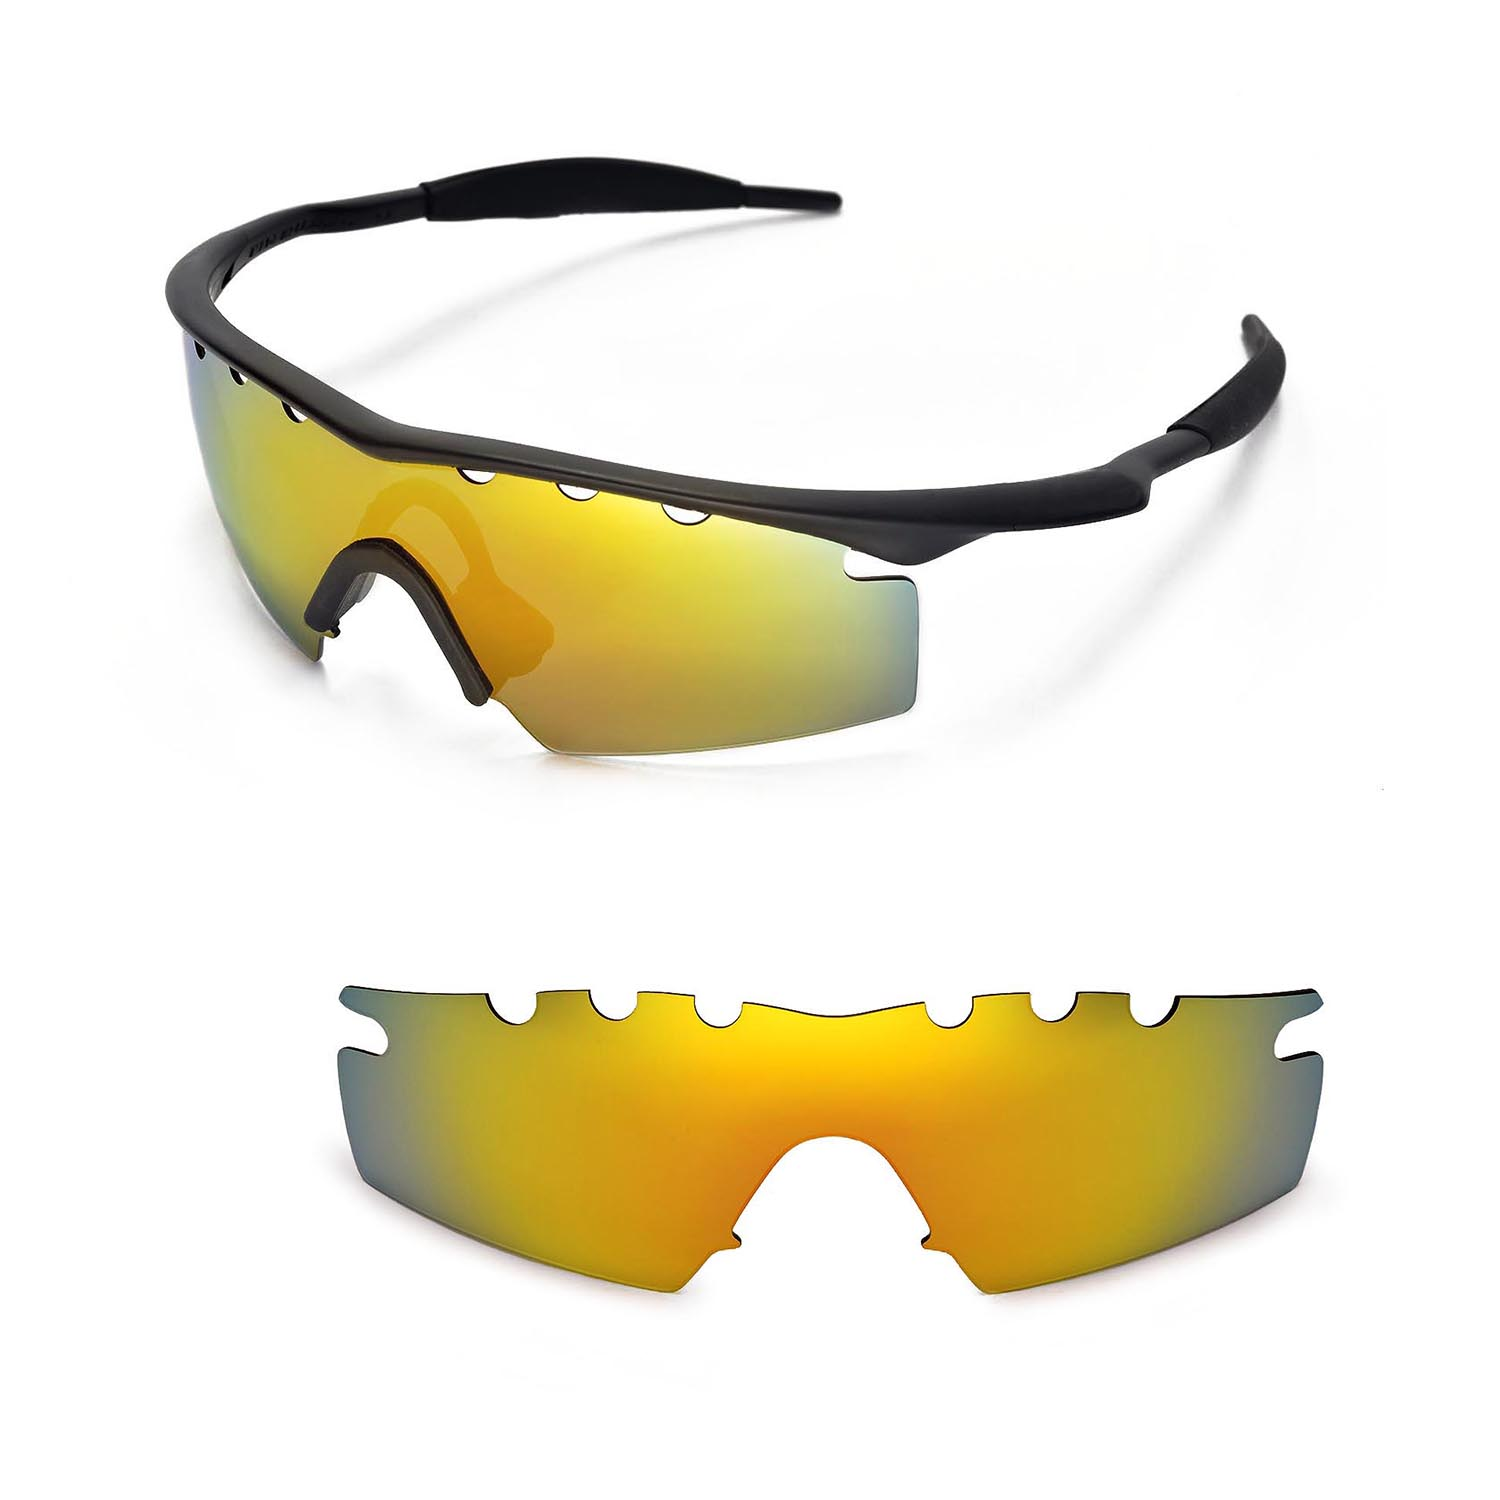 New WL Polarized 24K Gold Vented Replacement Lenses For Oakley M ...